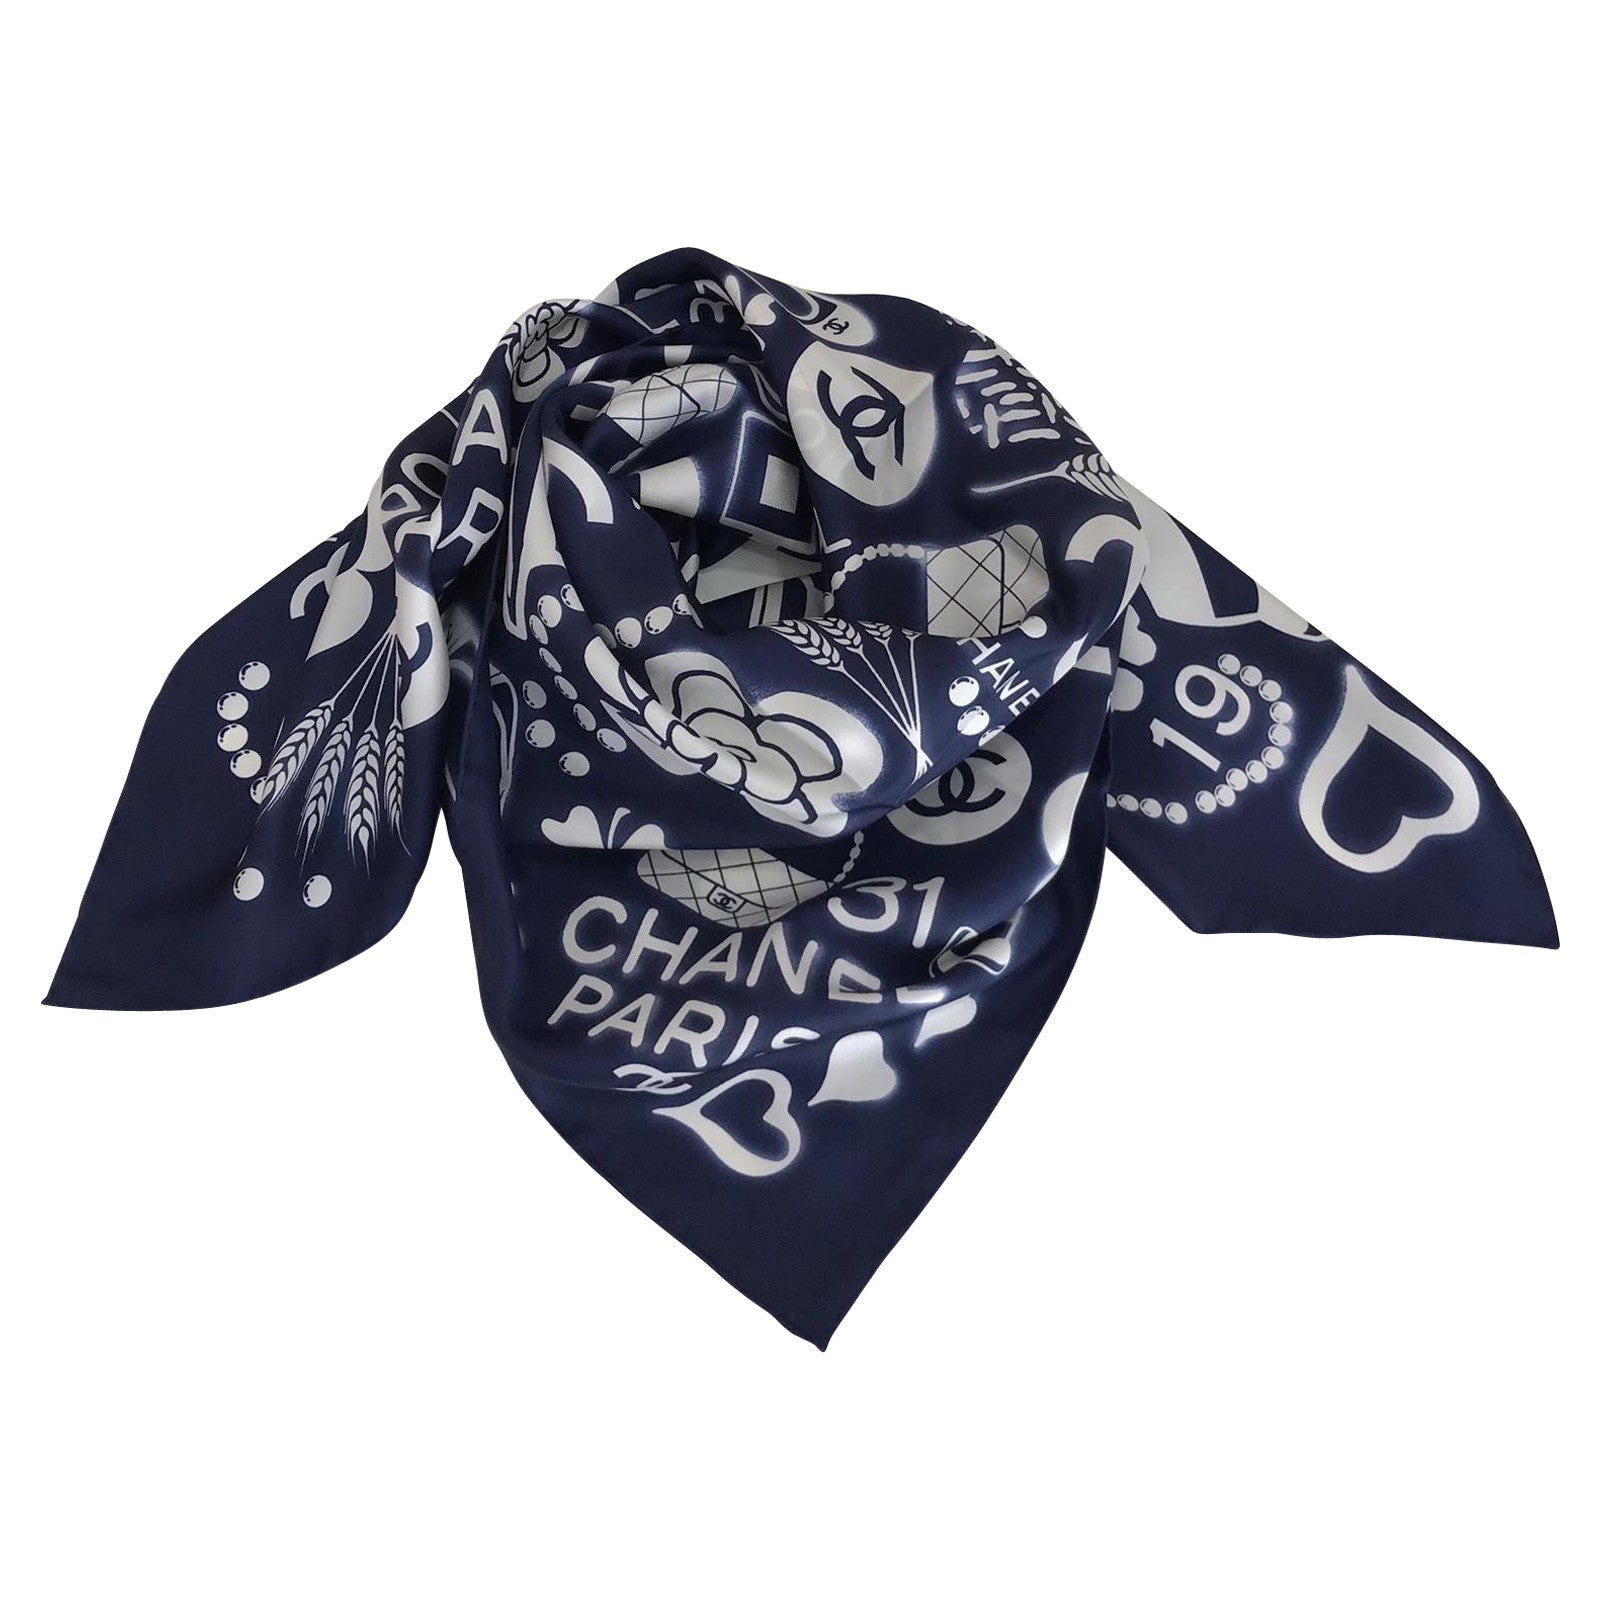 How Much Is Chanel? Chanel Price Guide how much is chanel scarf